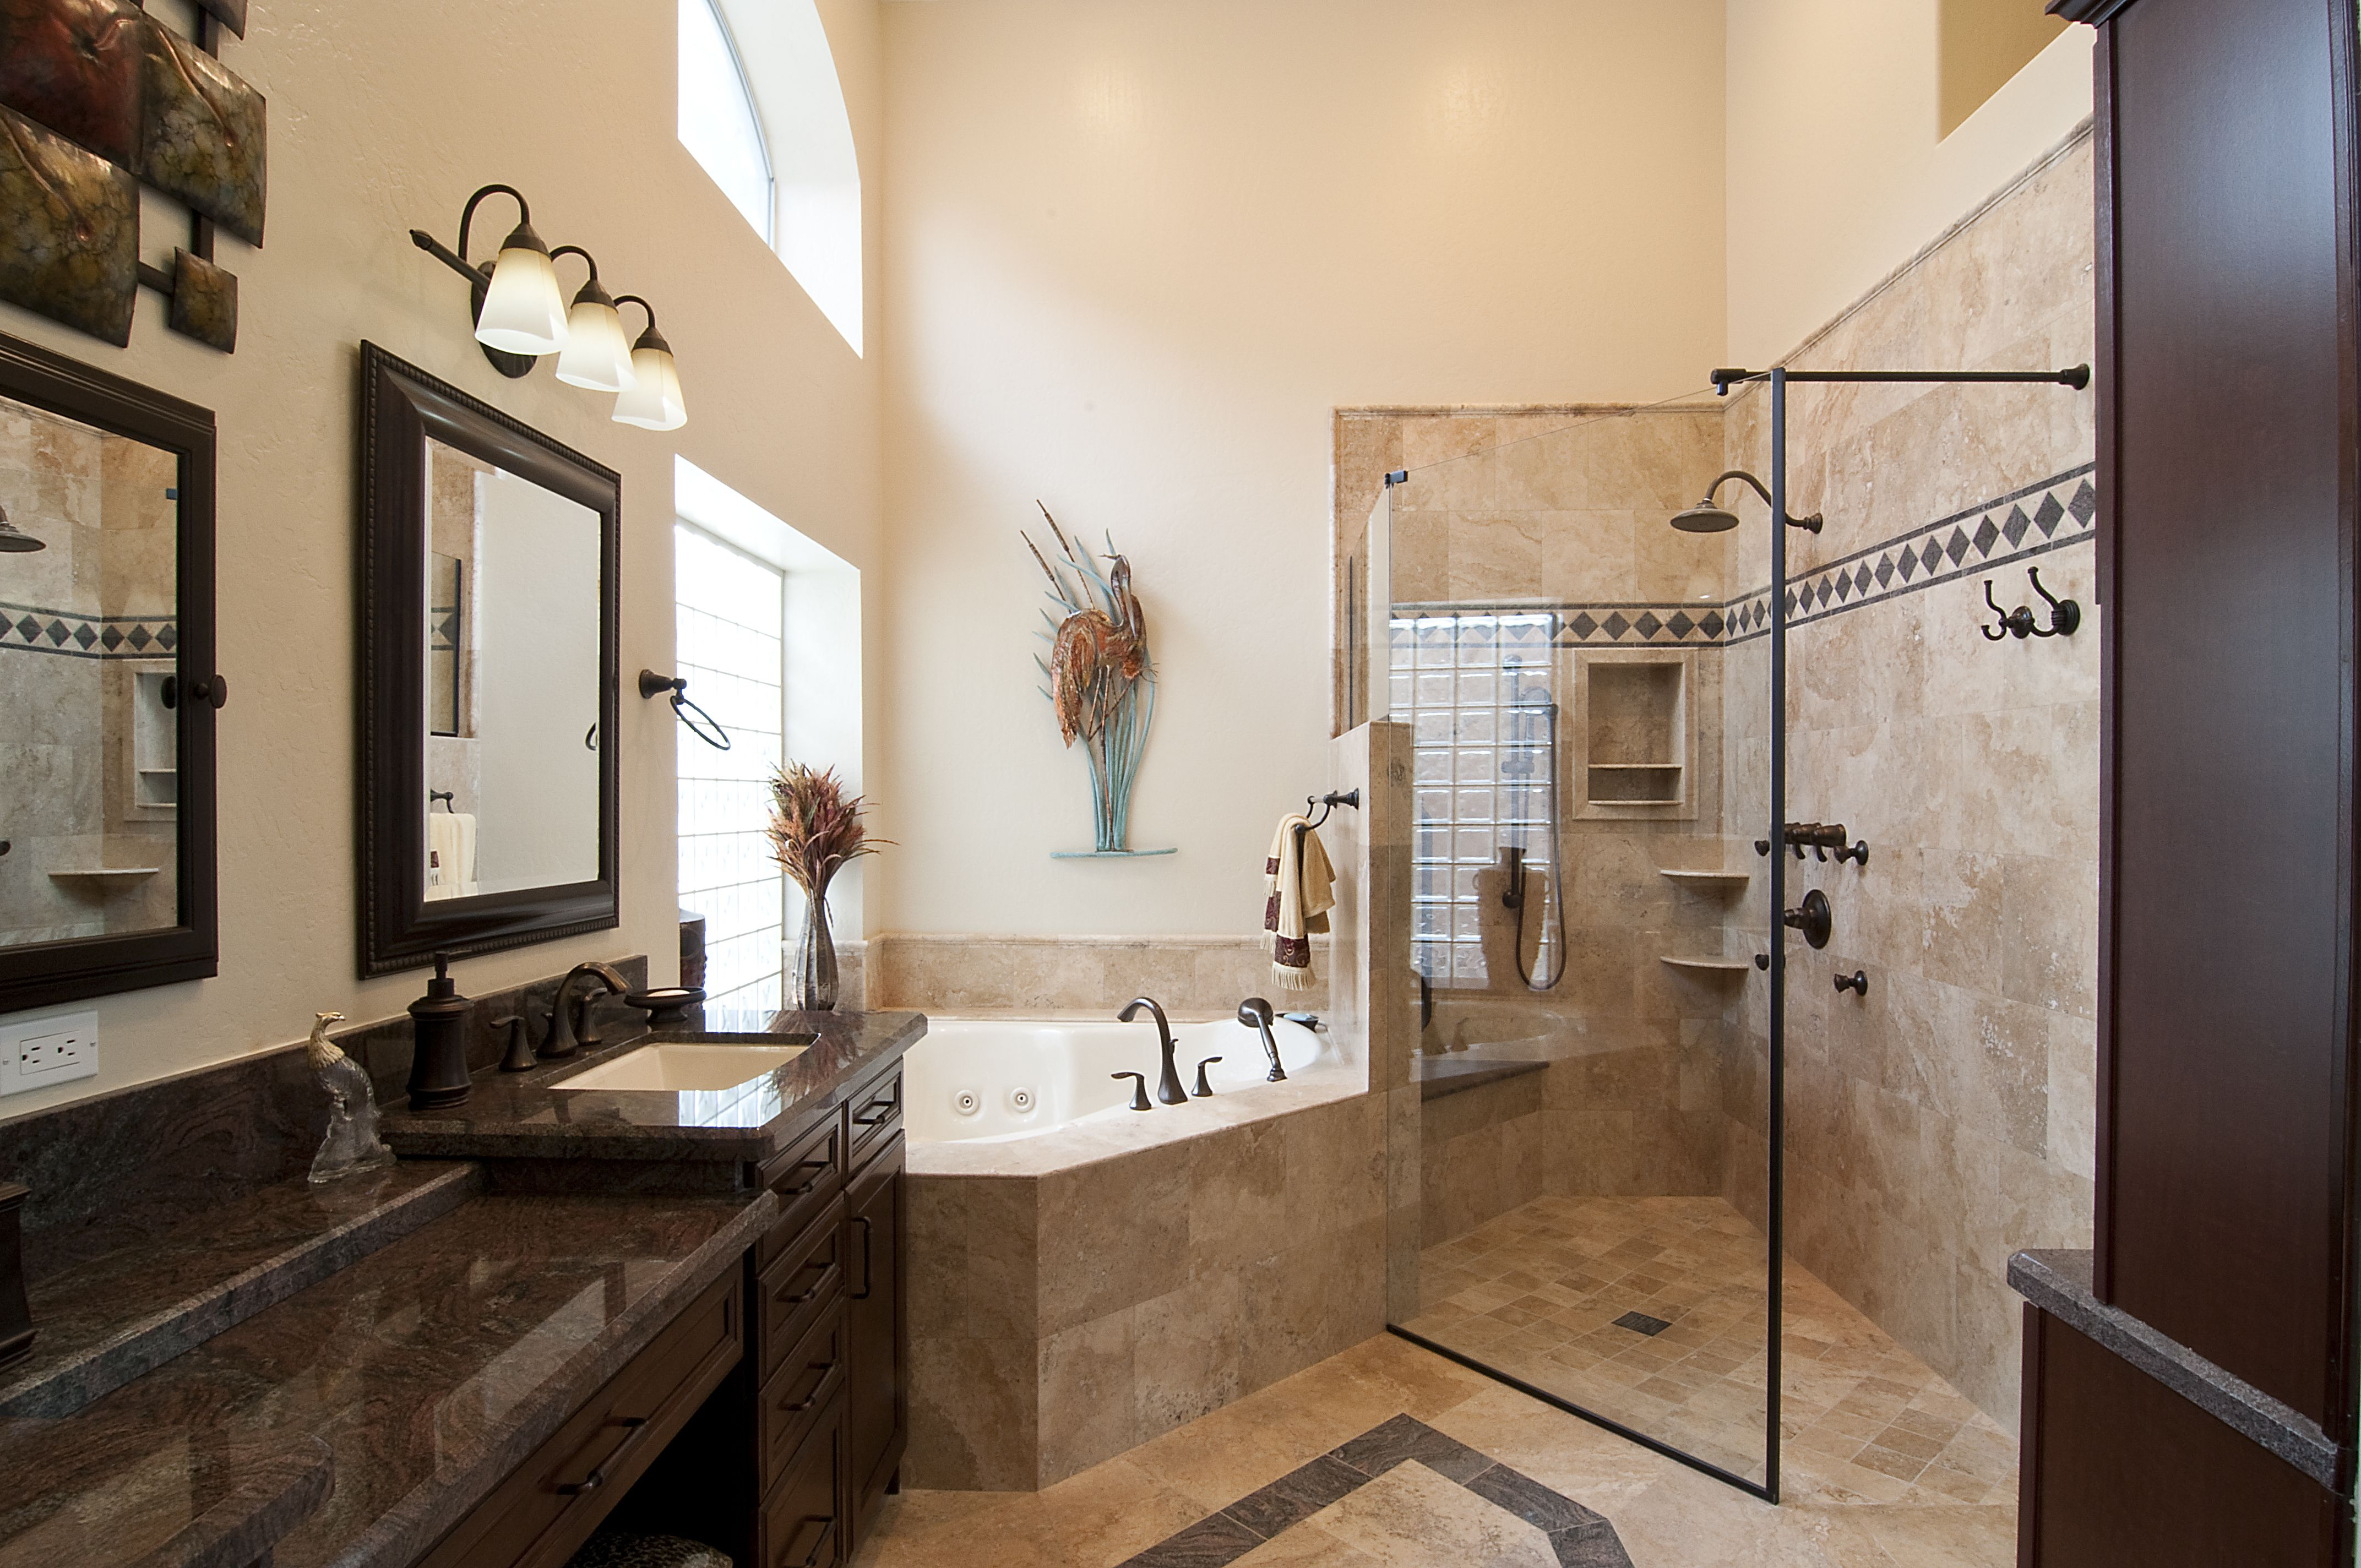 Delicieux Bathroom Remodel By Custom Creative Remodeling, Scottsdale, AZ 623 432 4529  Complimentary